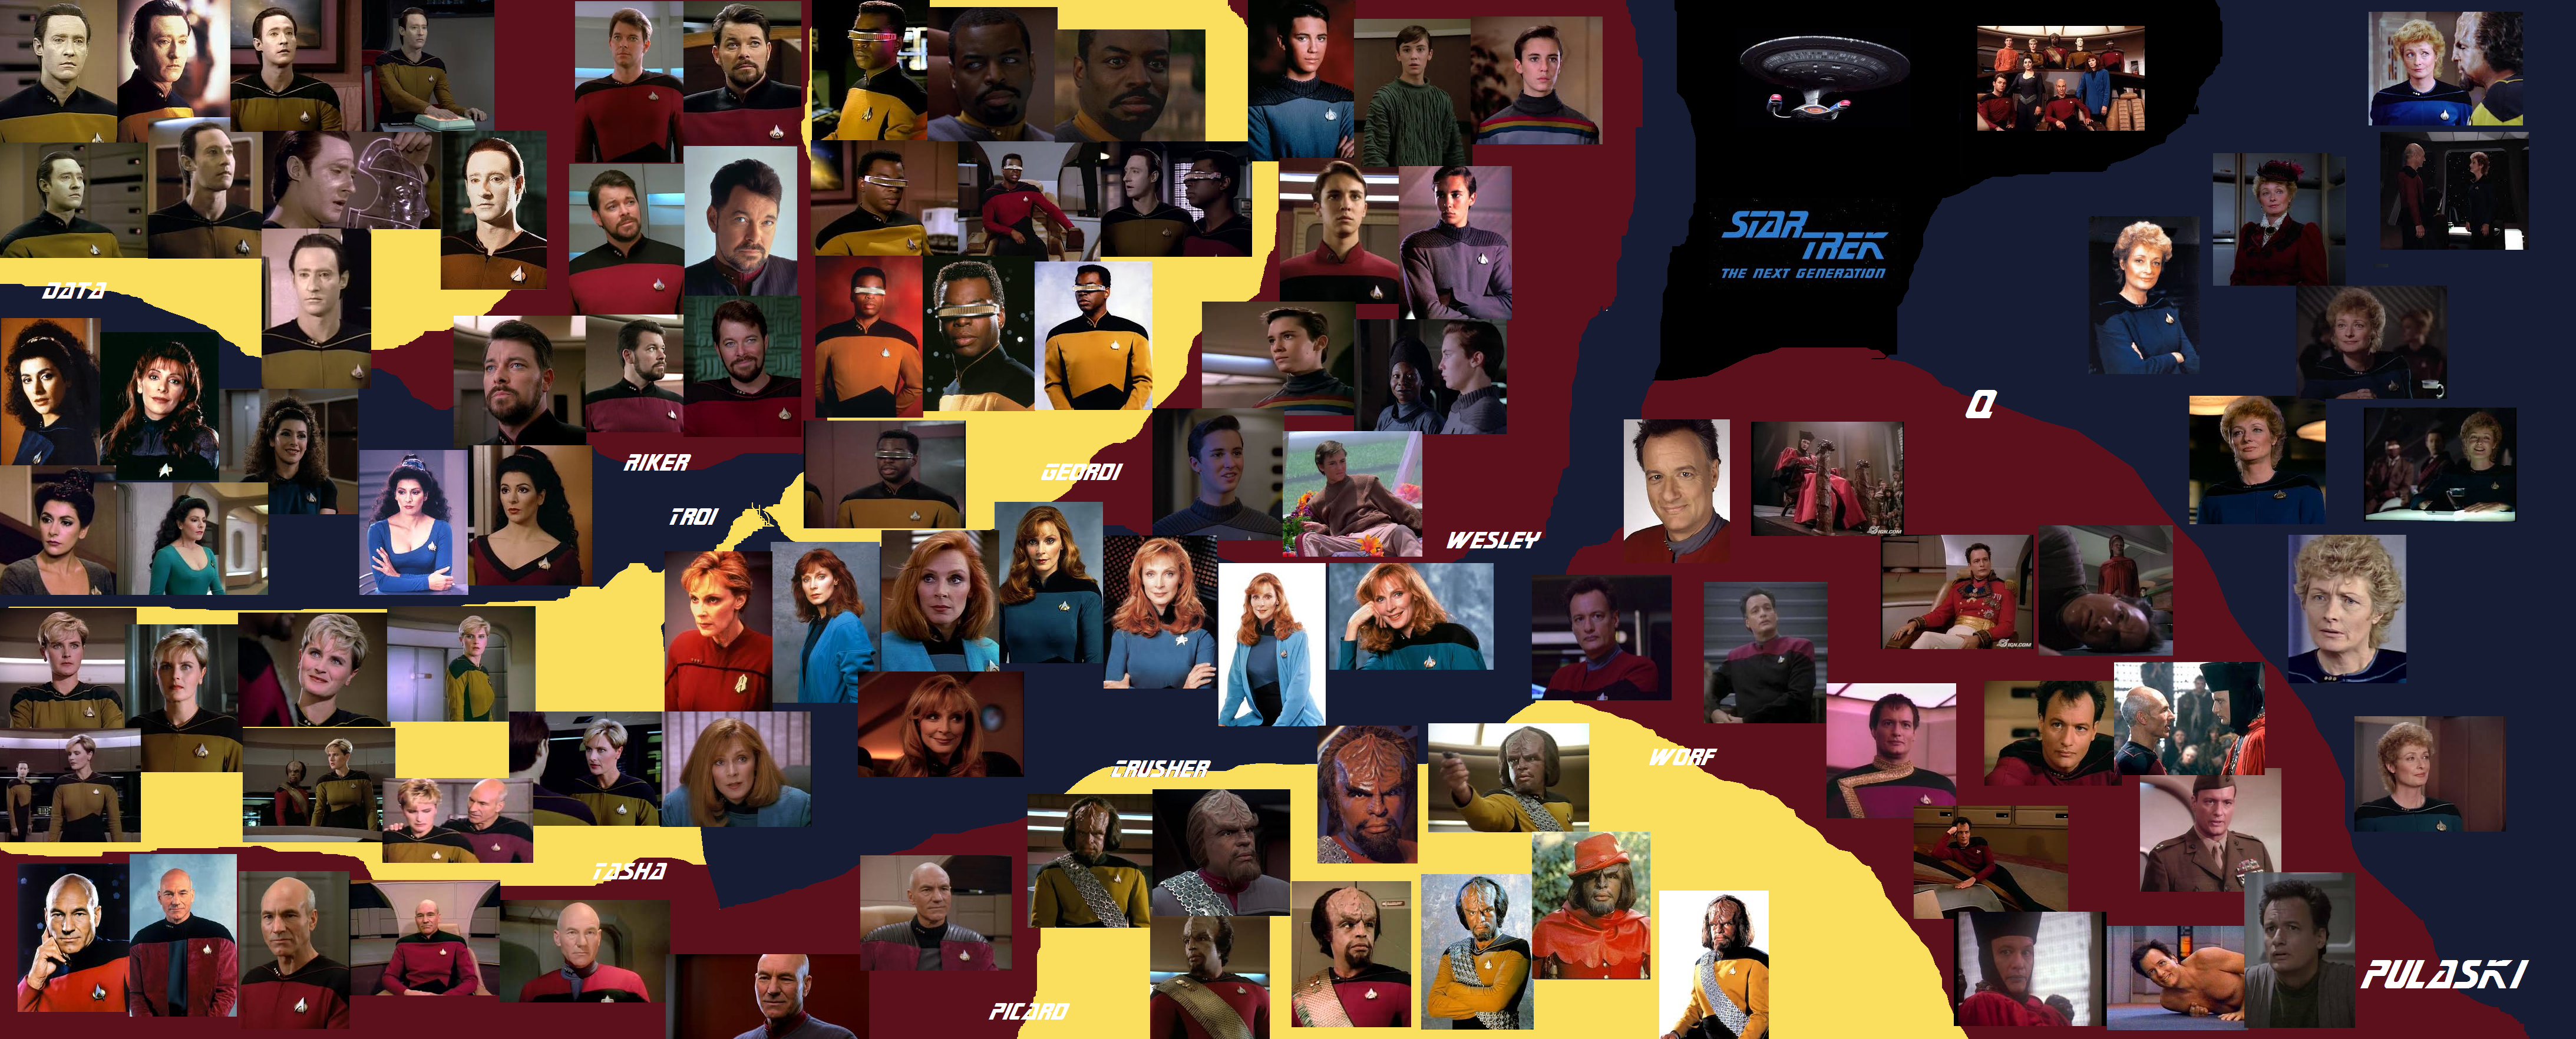 Star Trek Tng Wallpaper By Millylove1098 On Deviantart